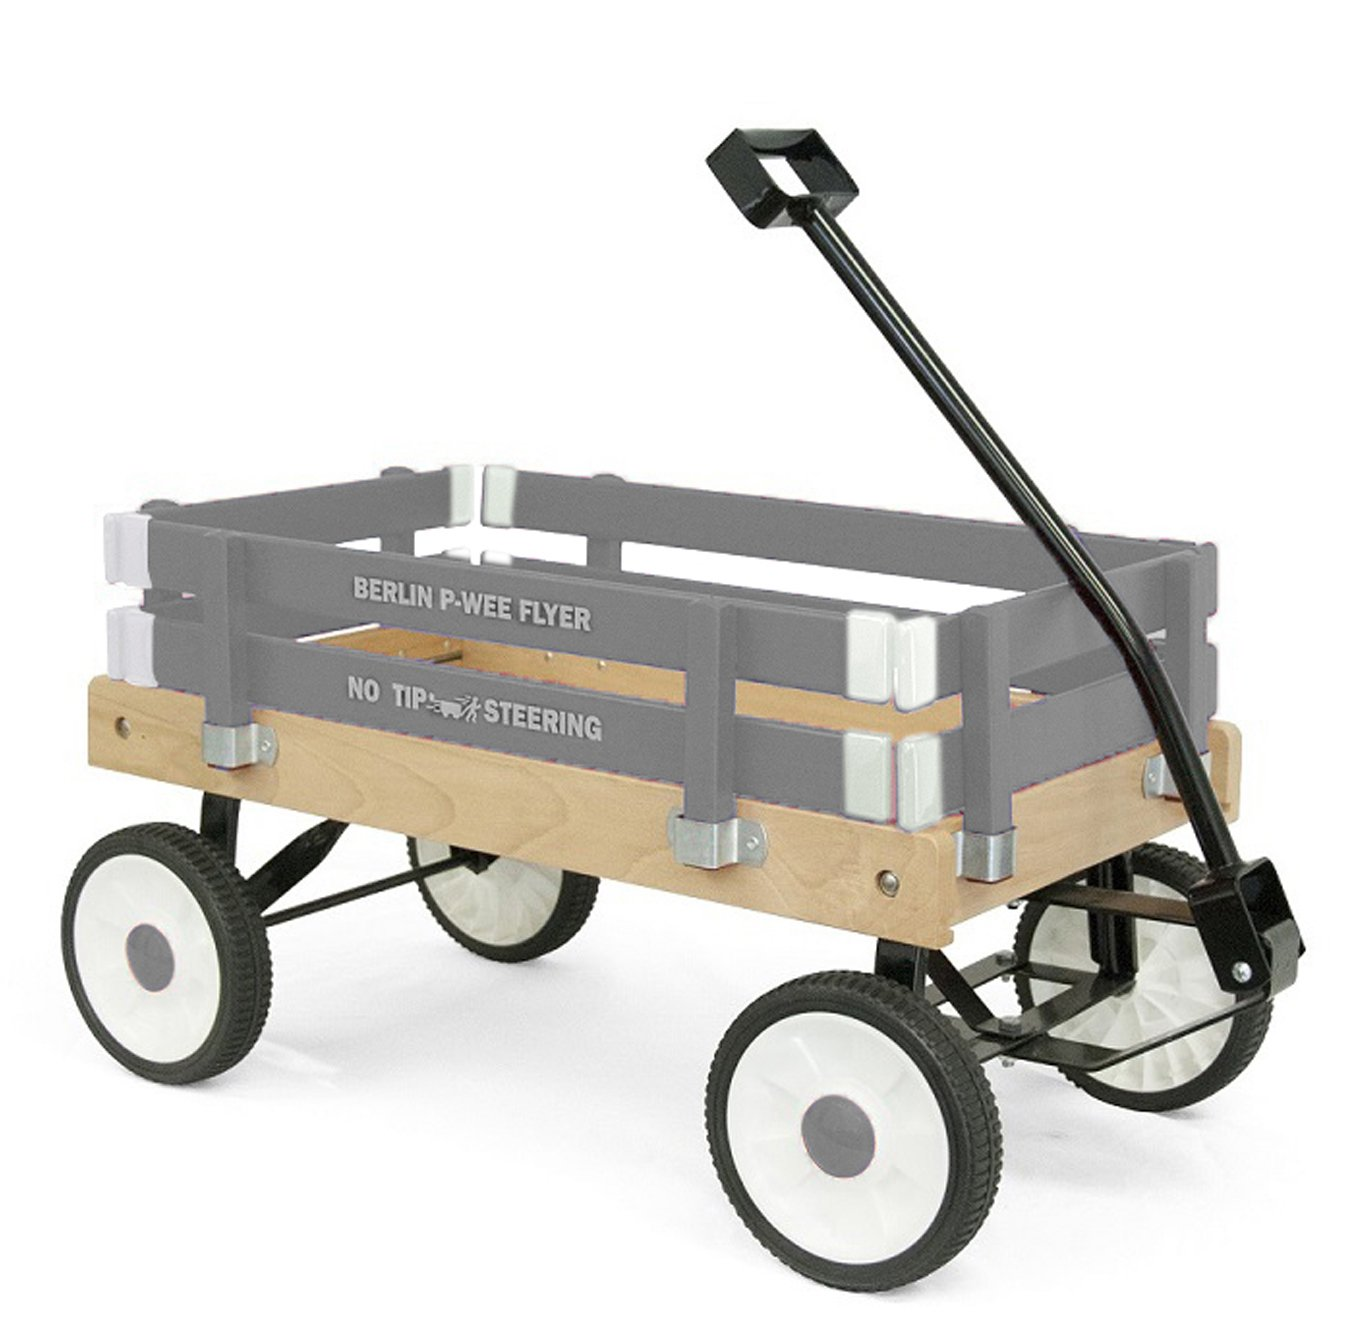 Berlin F257 Amish-Made Pee-Wee Flyer Ride-On Wagon, Gray